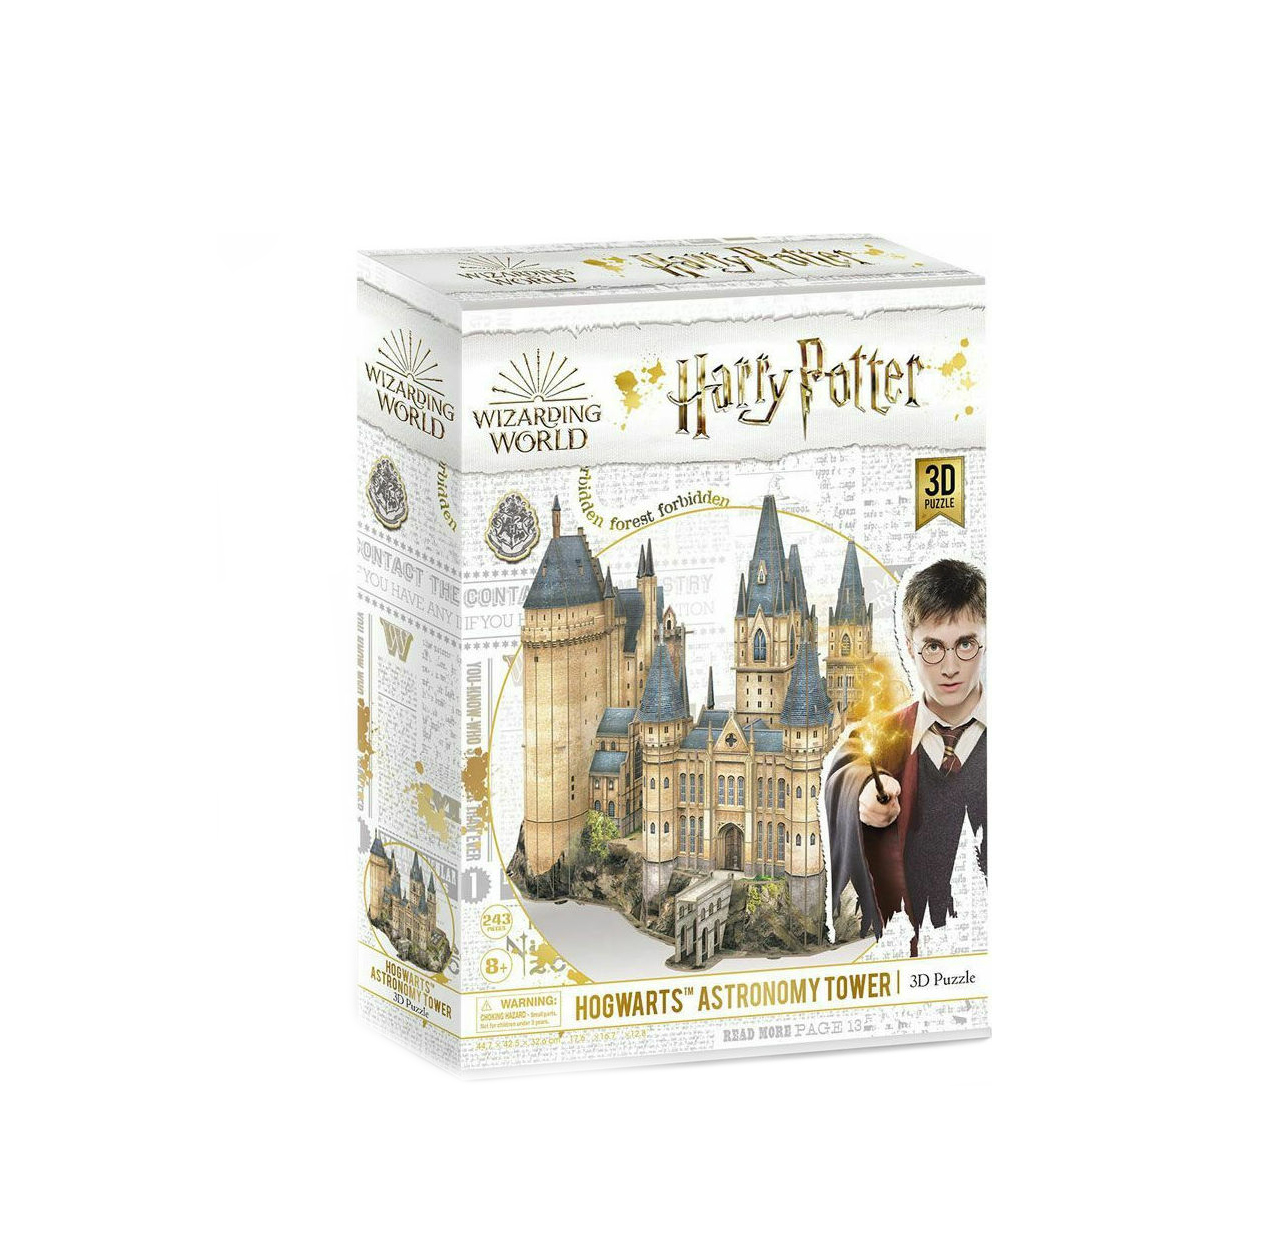 Harry Potter Puzzle Hogwarts Astronomy Tower 3D 243pcs DS1012h 420002